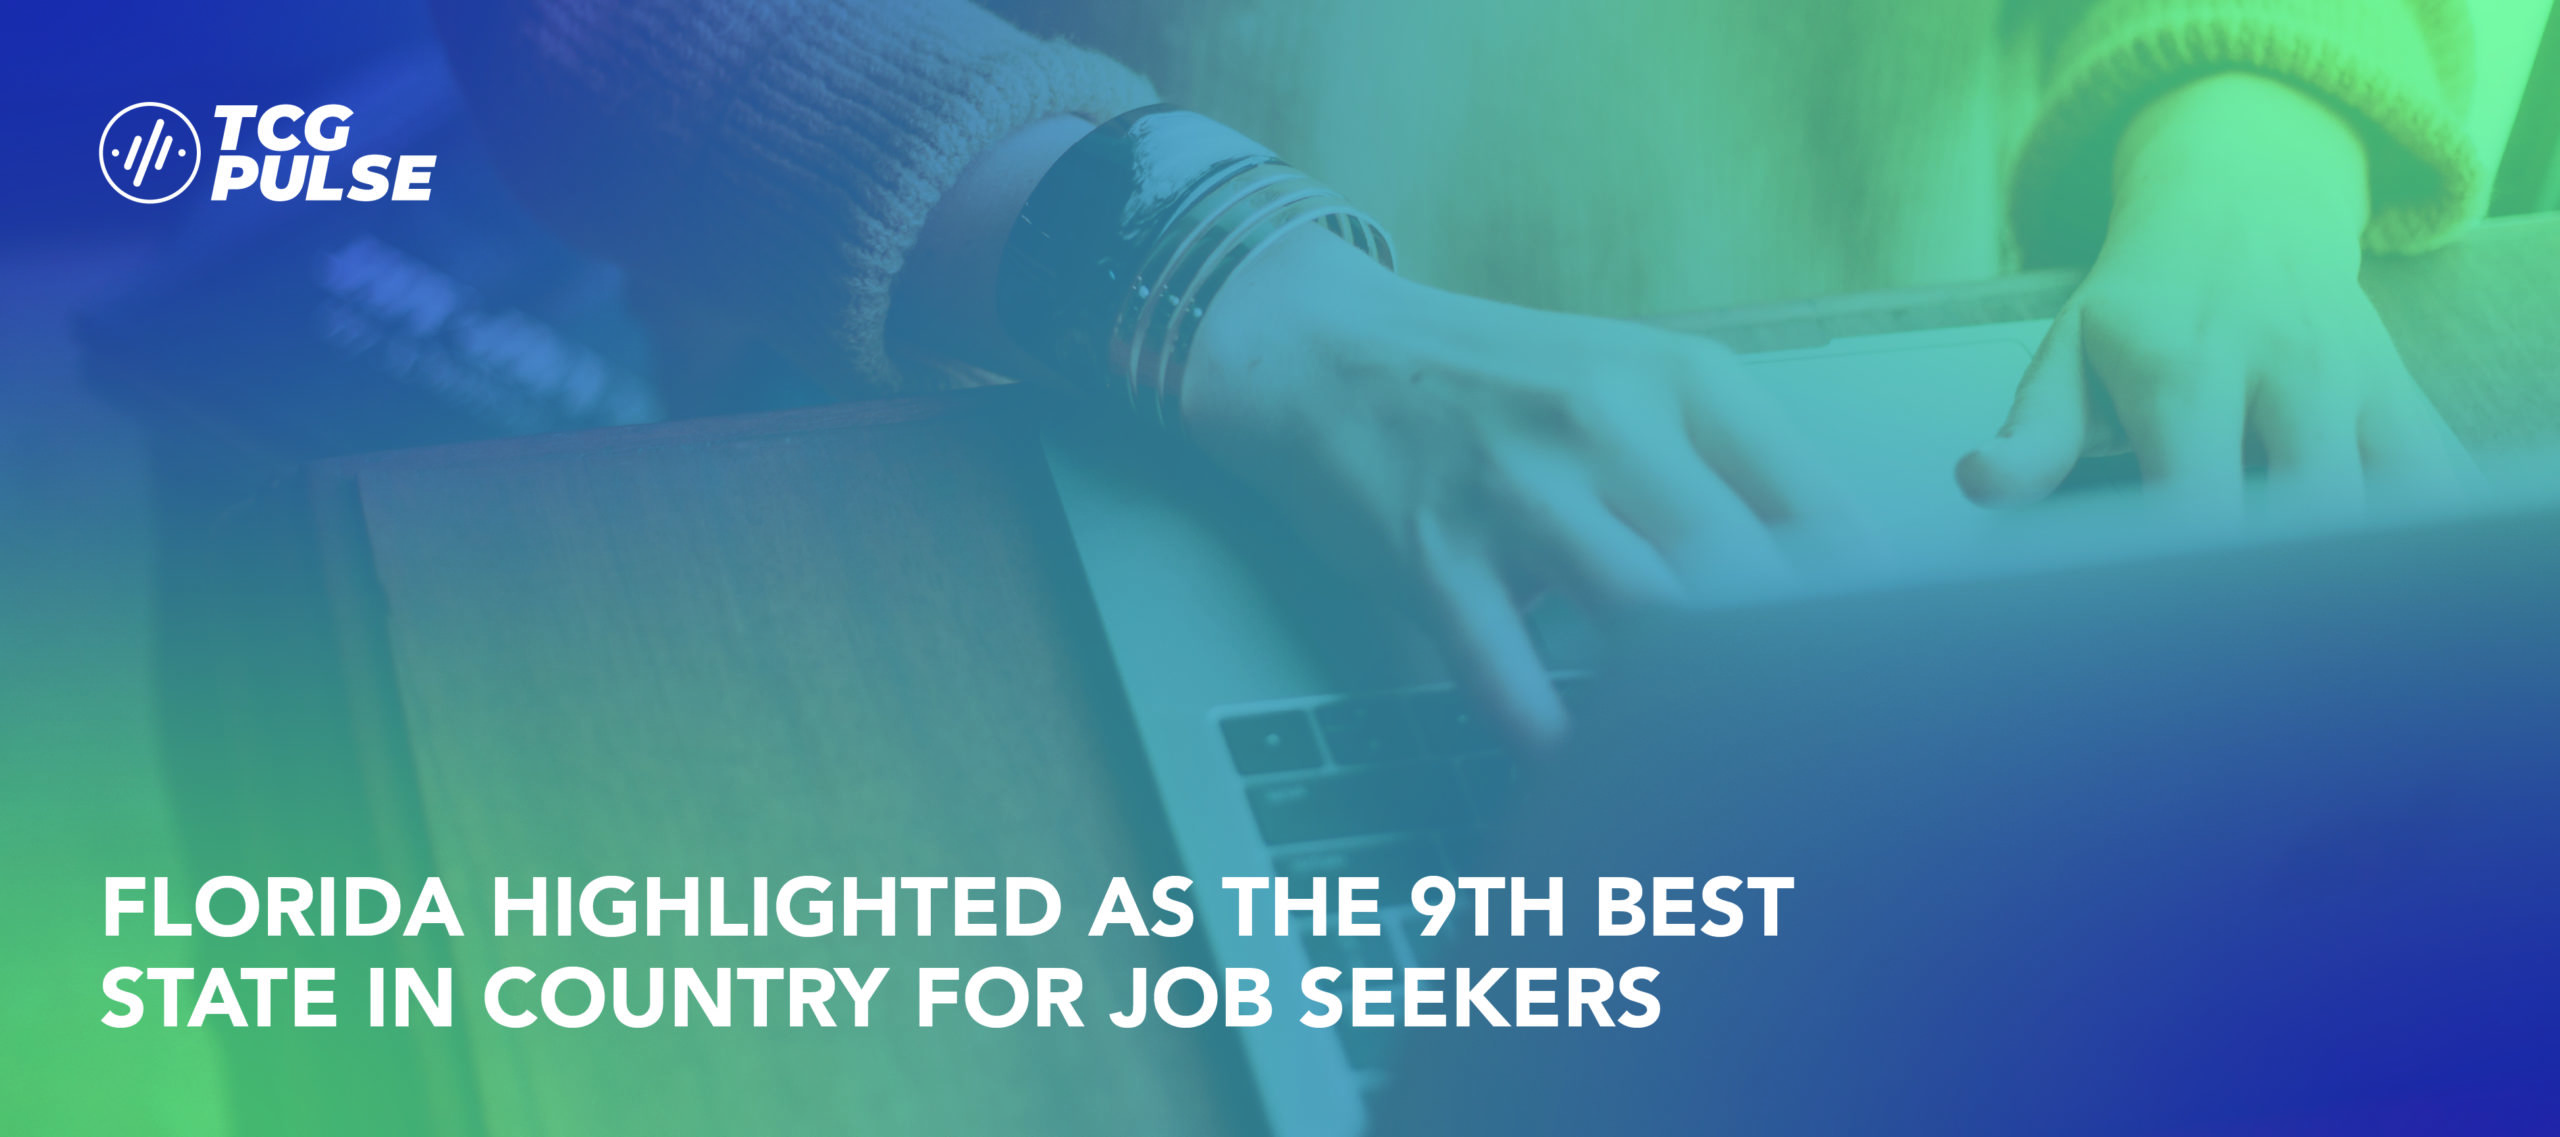 Florida highlighted as the 9th best state in country for Job Seekers